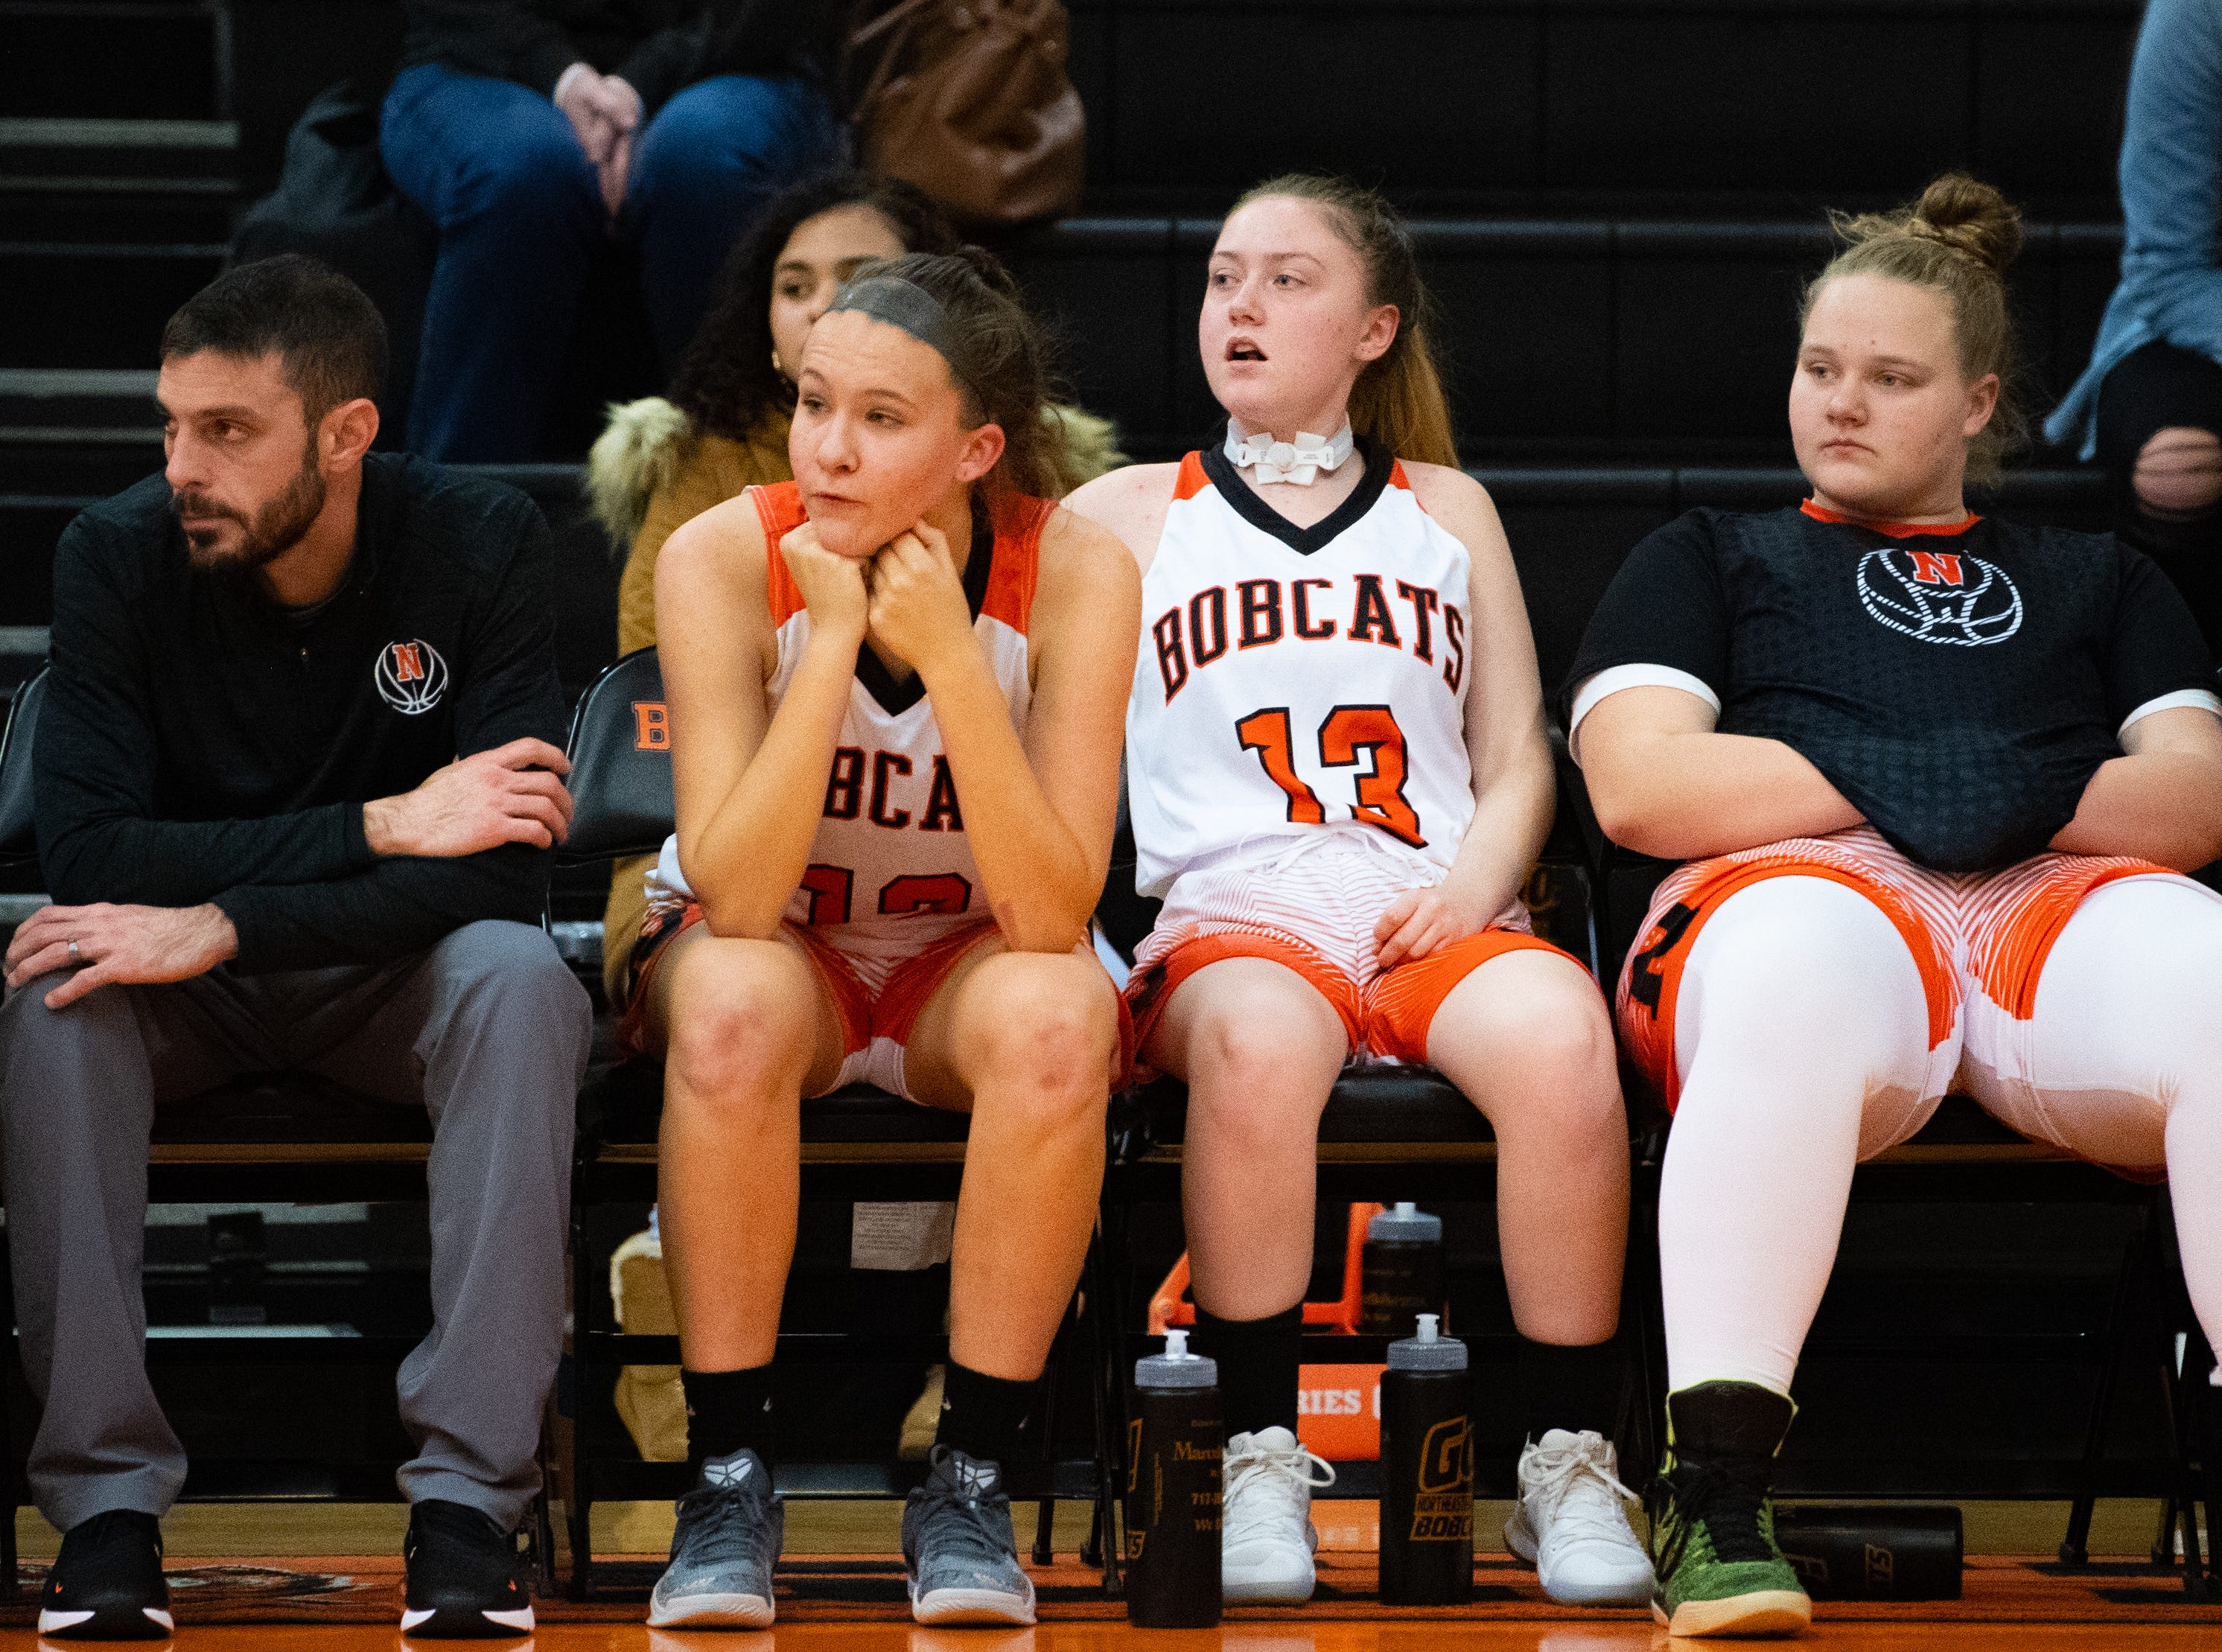 After scoring the opening basket, Audrey Johnson (13) goes to the bench to avoid injury, December 12, 2018.